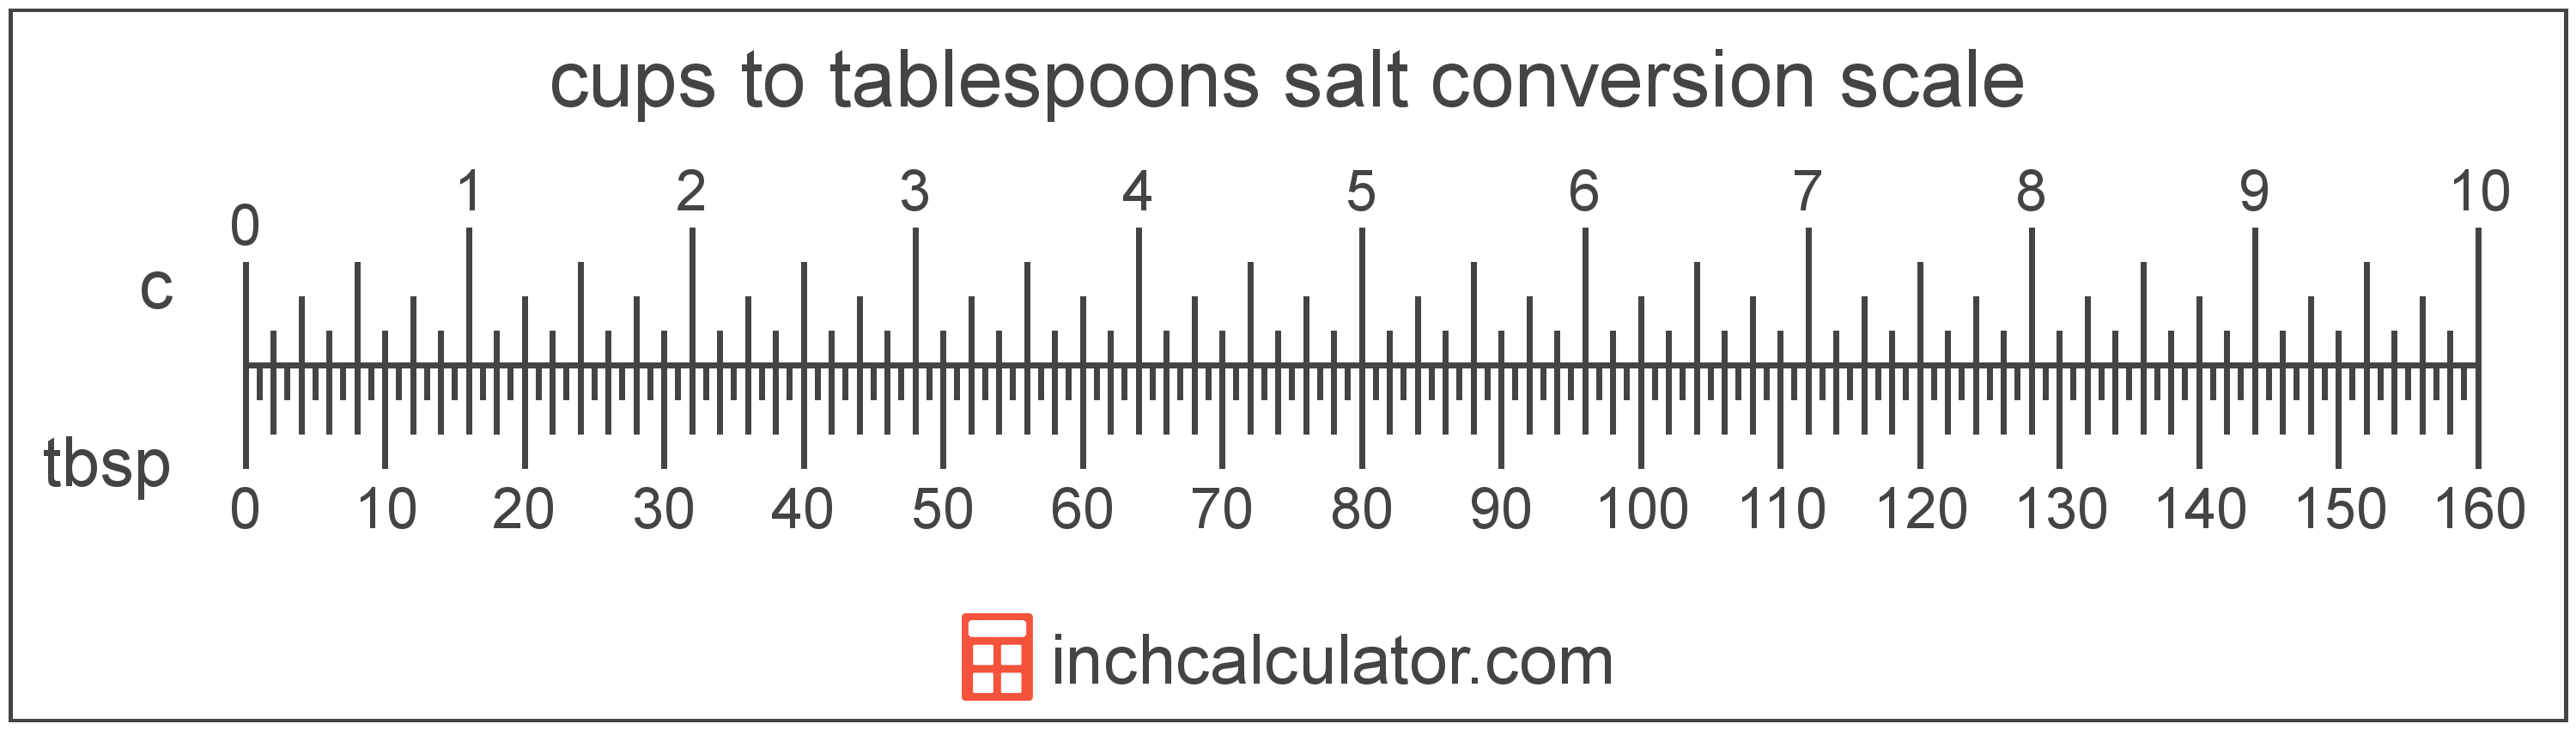 conversion scale showing tablespoons and equivalent cups salt volume values